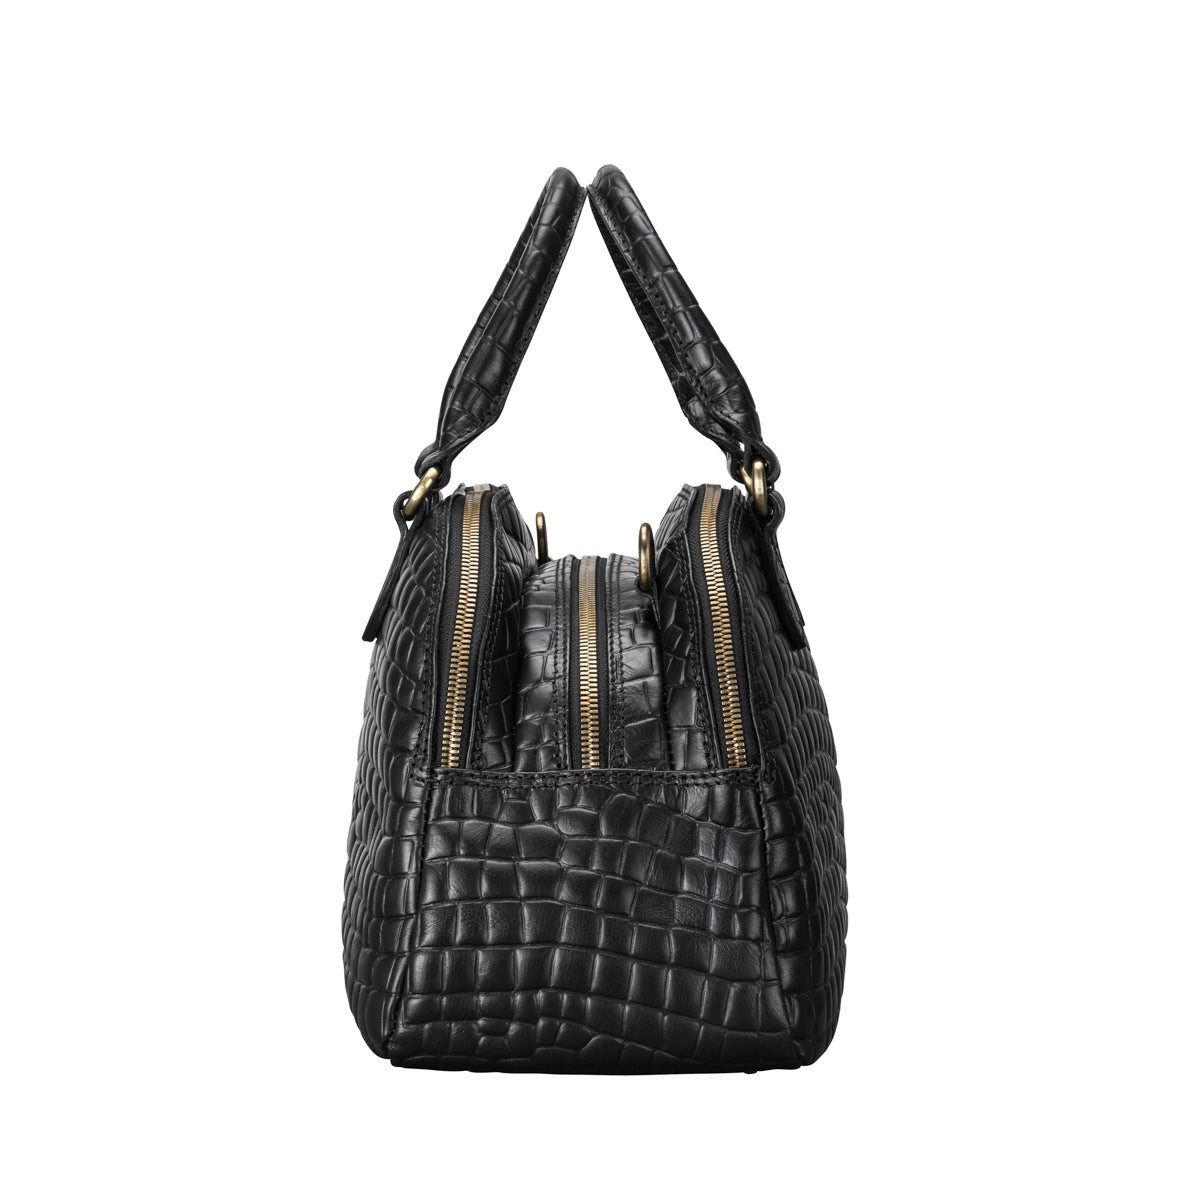 Image 3 of the 'LilianaS' Mock Croc Leather Ladies Bowling Bag